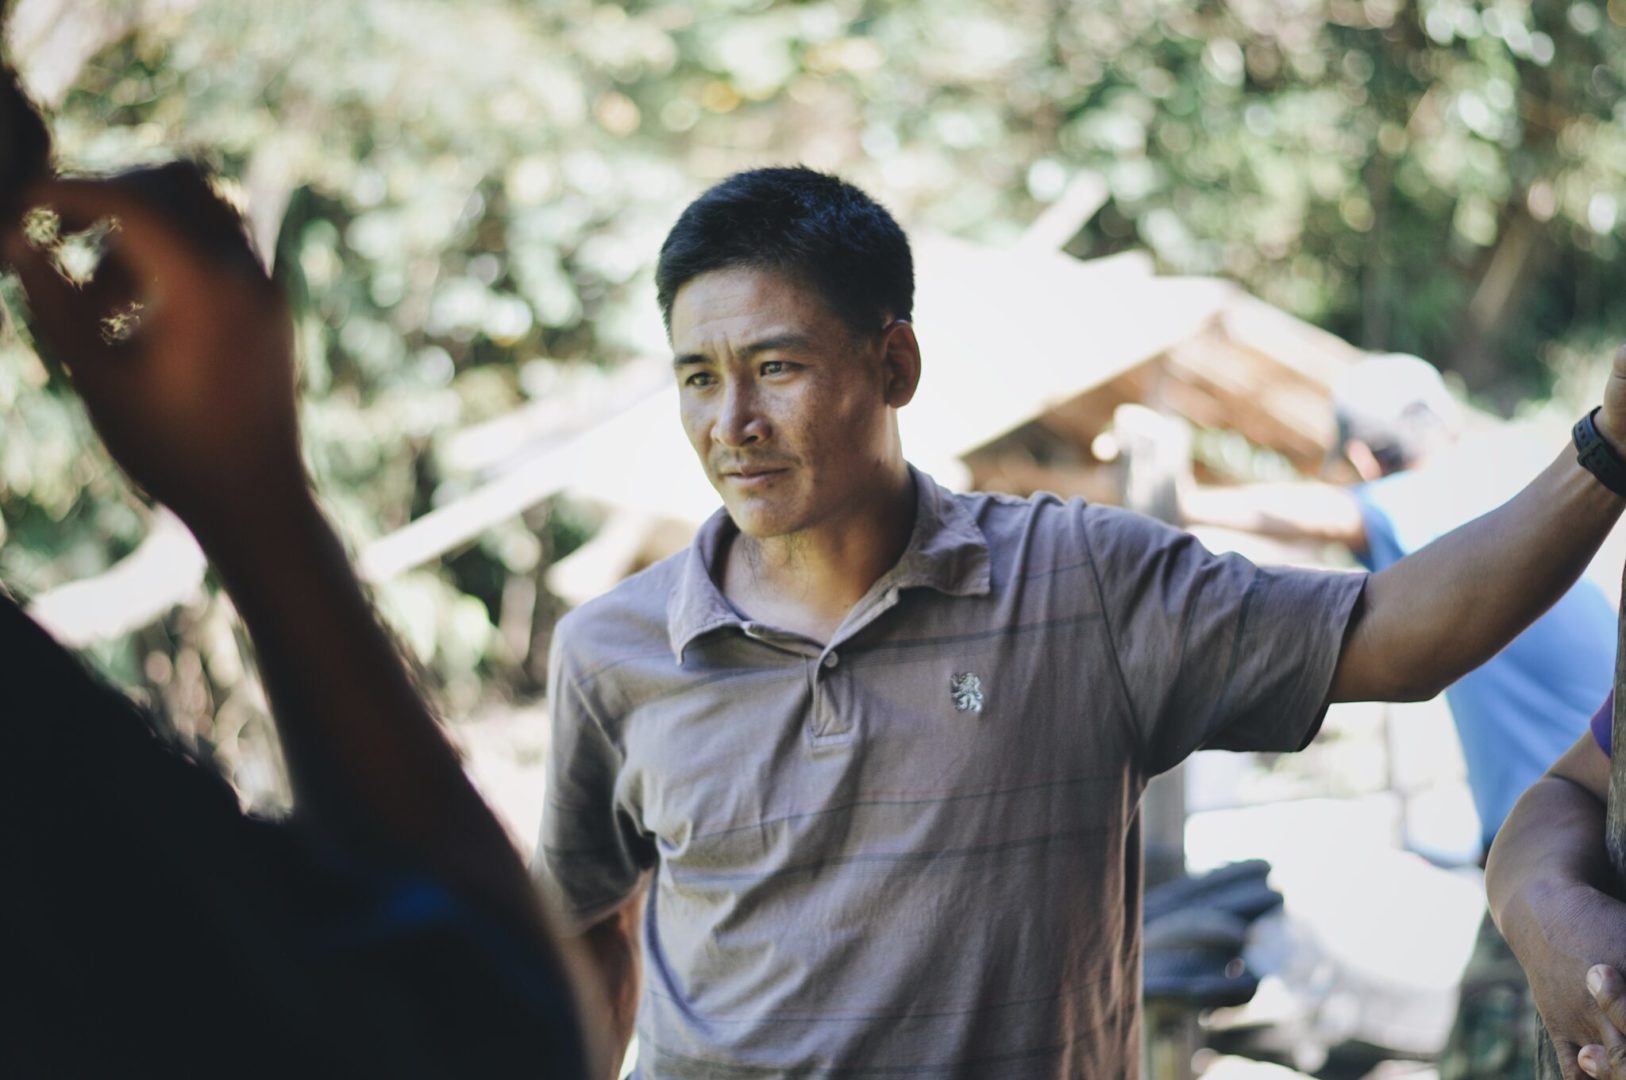 Our partner Duang Dee reminds us of our role as caretakers of creation.